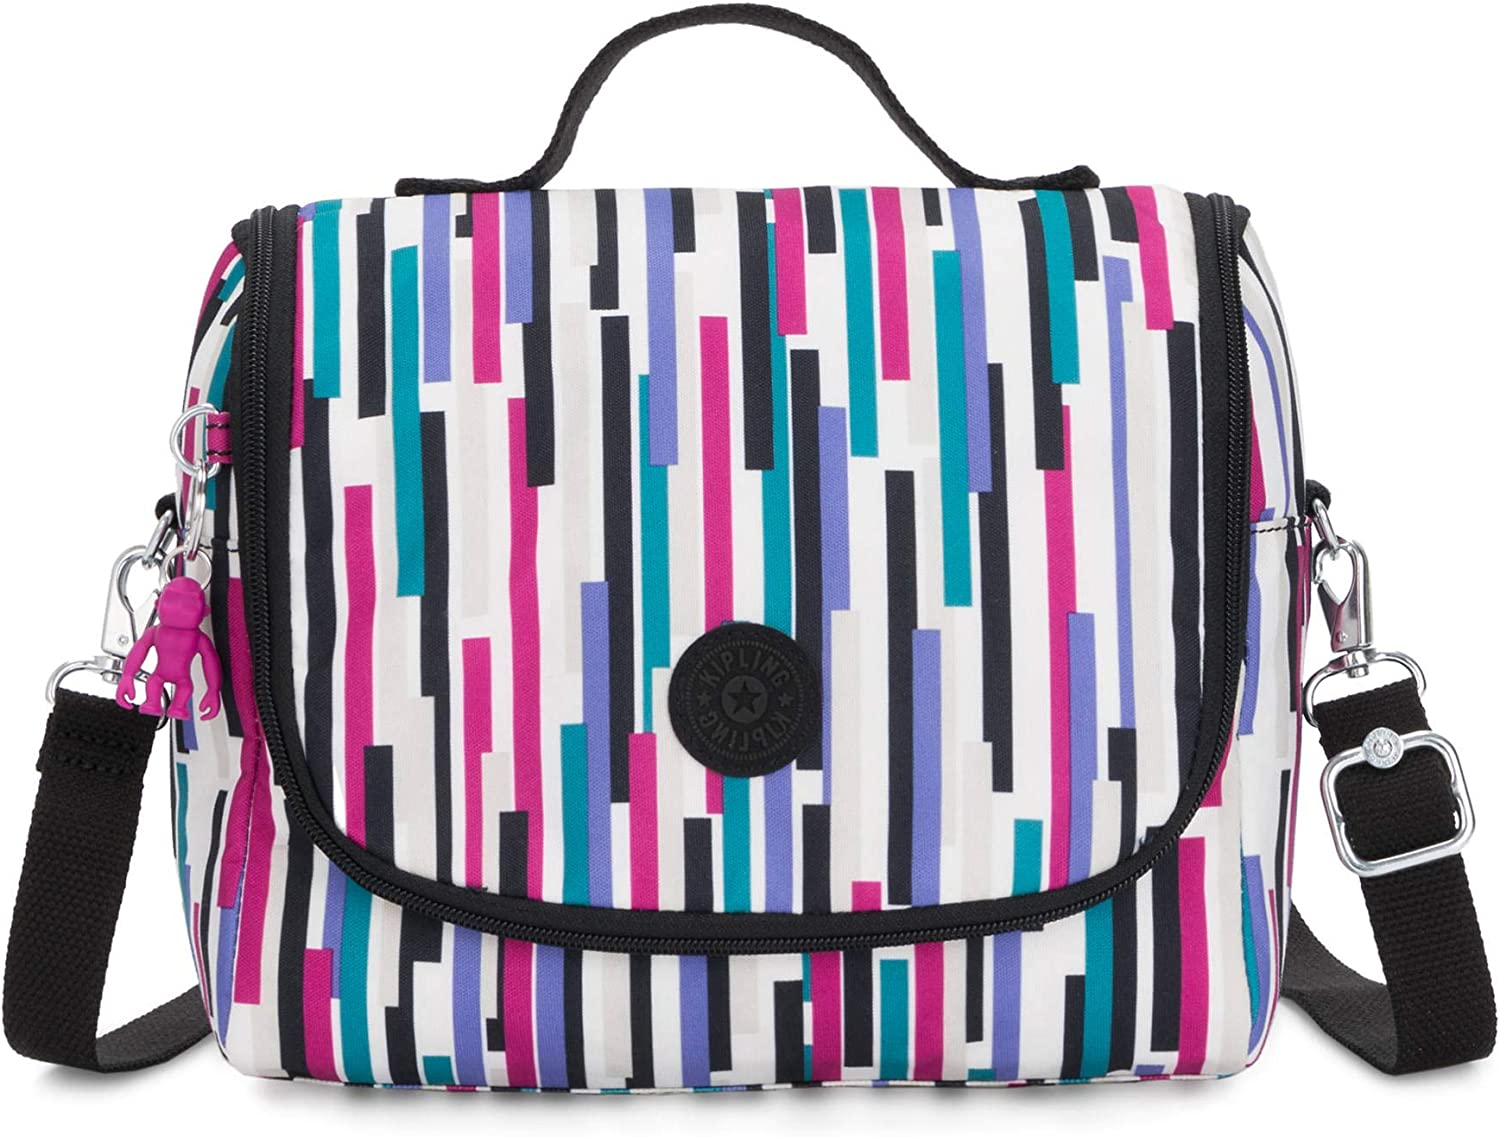 Kipling Kichirou Insulated Lunch Bag, Urban Stripe, 9